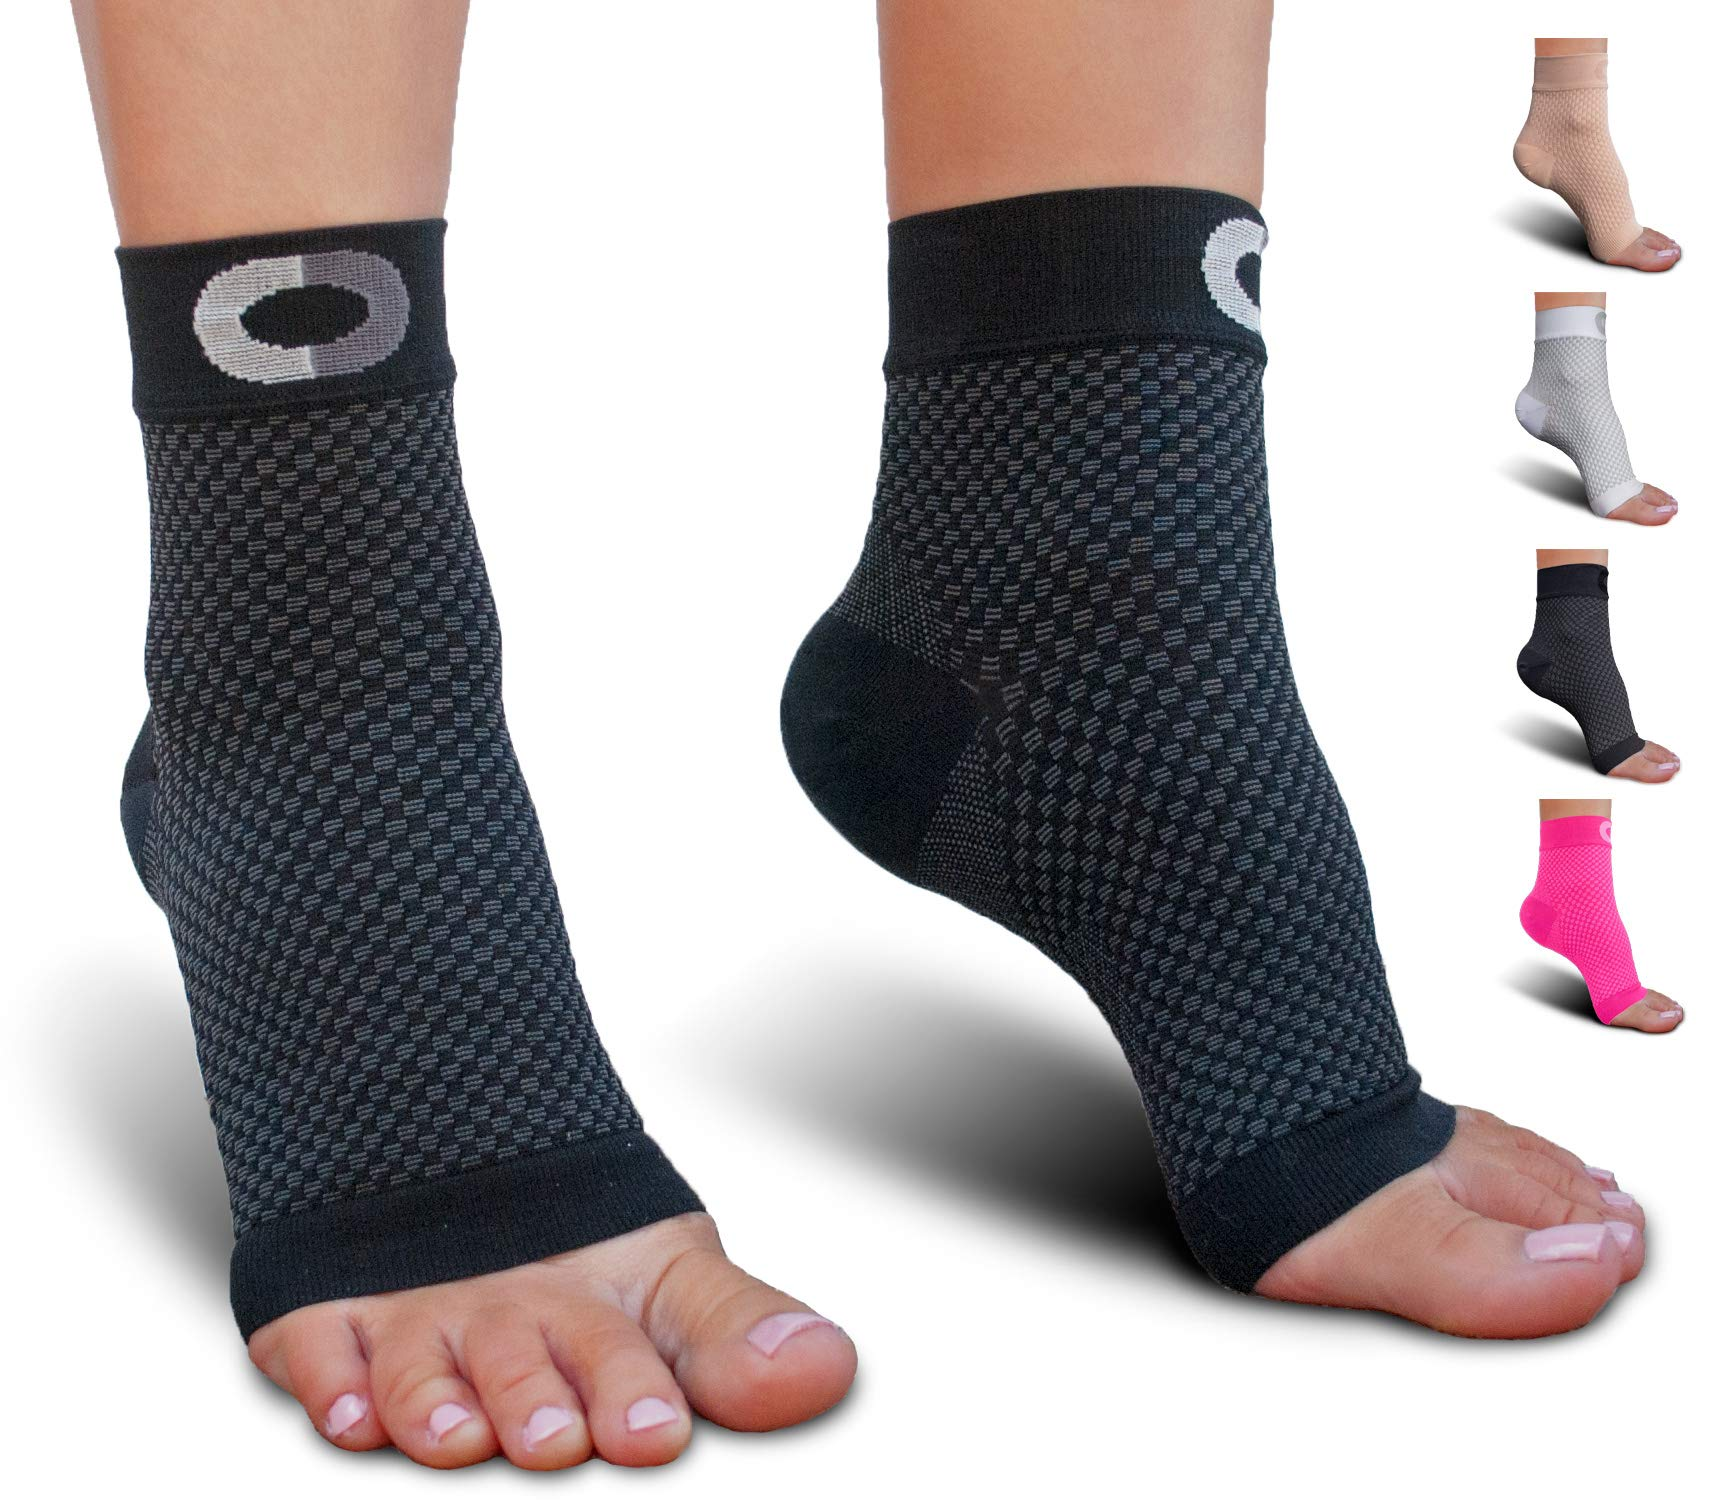 9605db81e0f Plantar Fasciitis Socks with Arch Support for Men & Women - Best Ankle  Compression Socks for Foot and Heel Pain Relief - Better Than Night Splint  Brace, ...